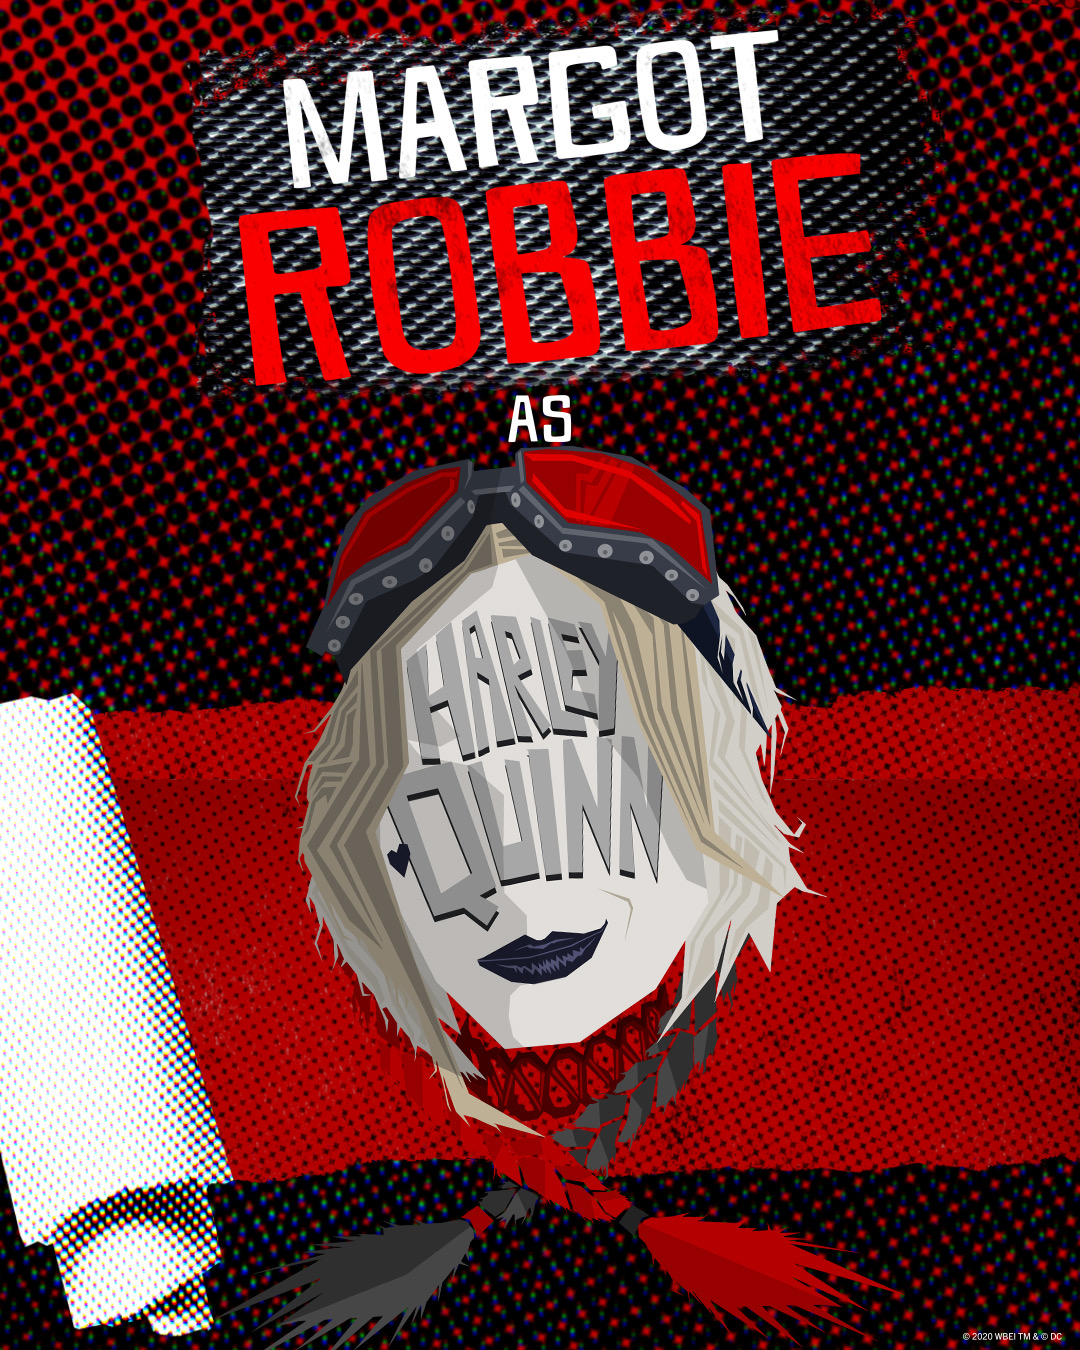 The Suicide Squad Character Teaser Posters Margot Robbie is Harley Quinn